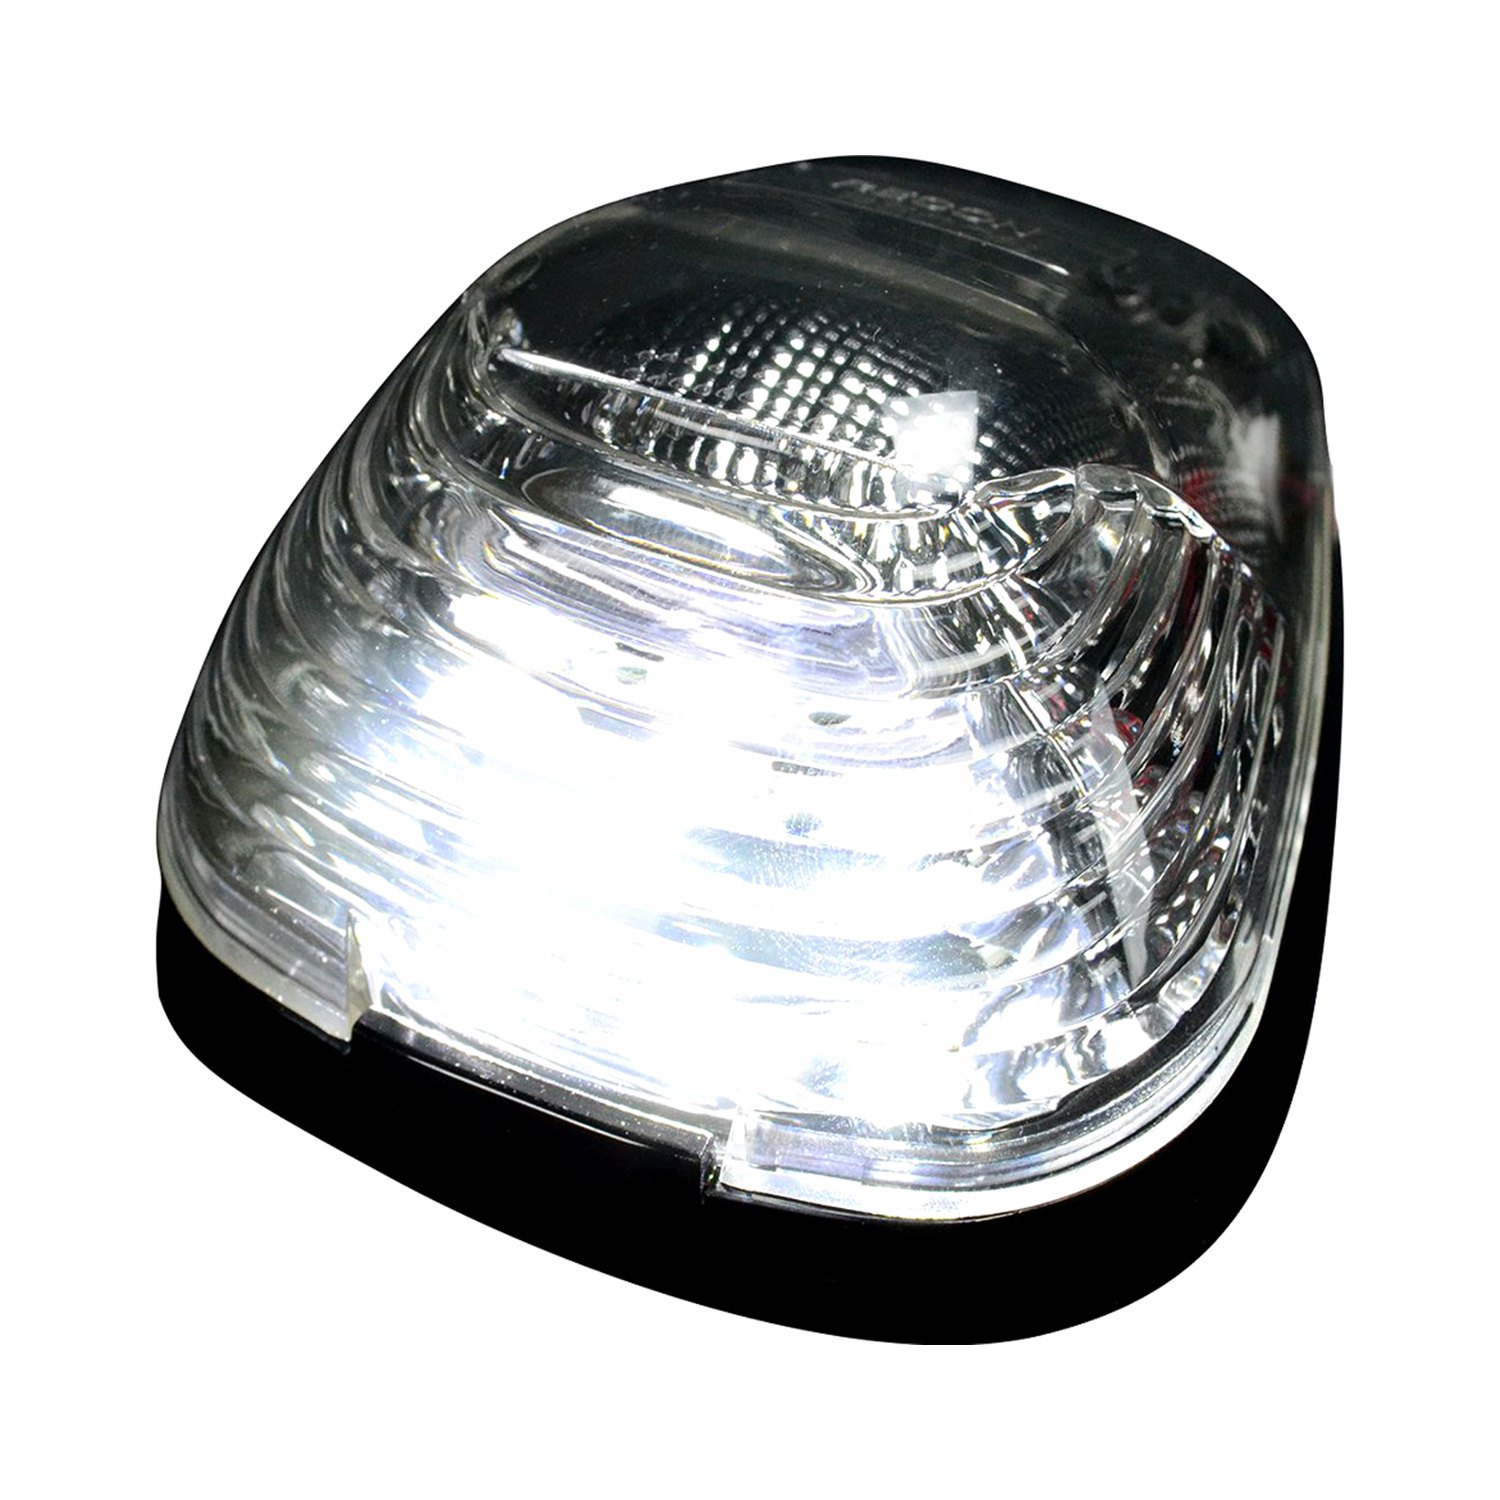 Amber Oled Cab Roof Lights With Ledsrecon Led Light Strobable Smoke Strobe And